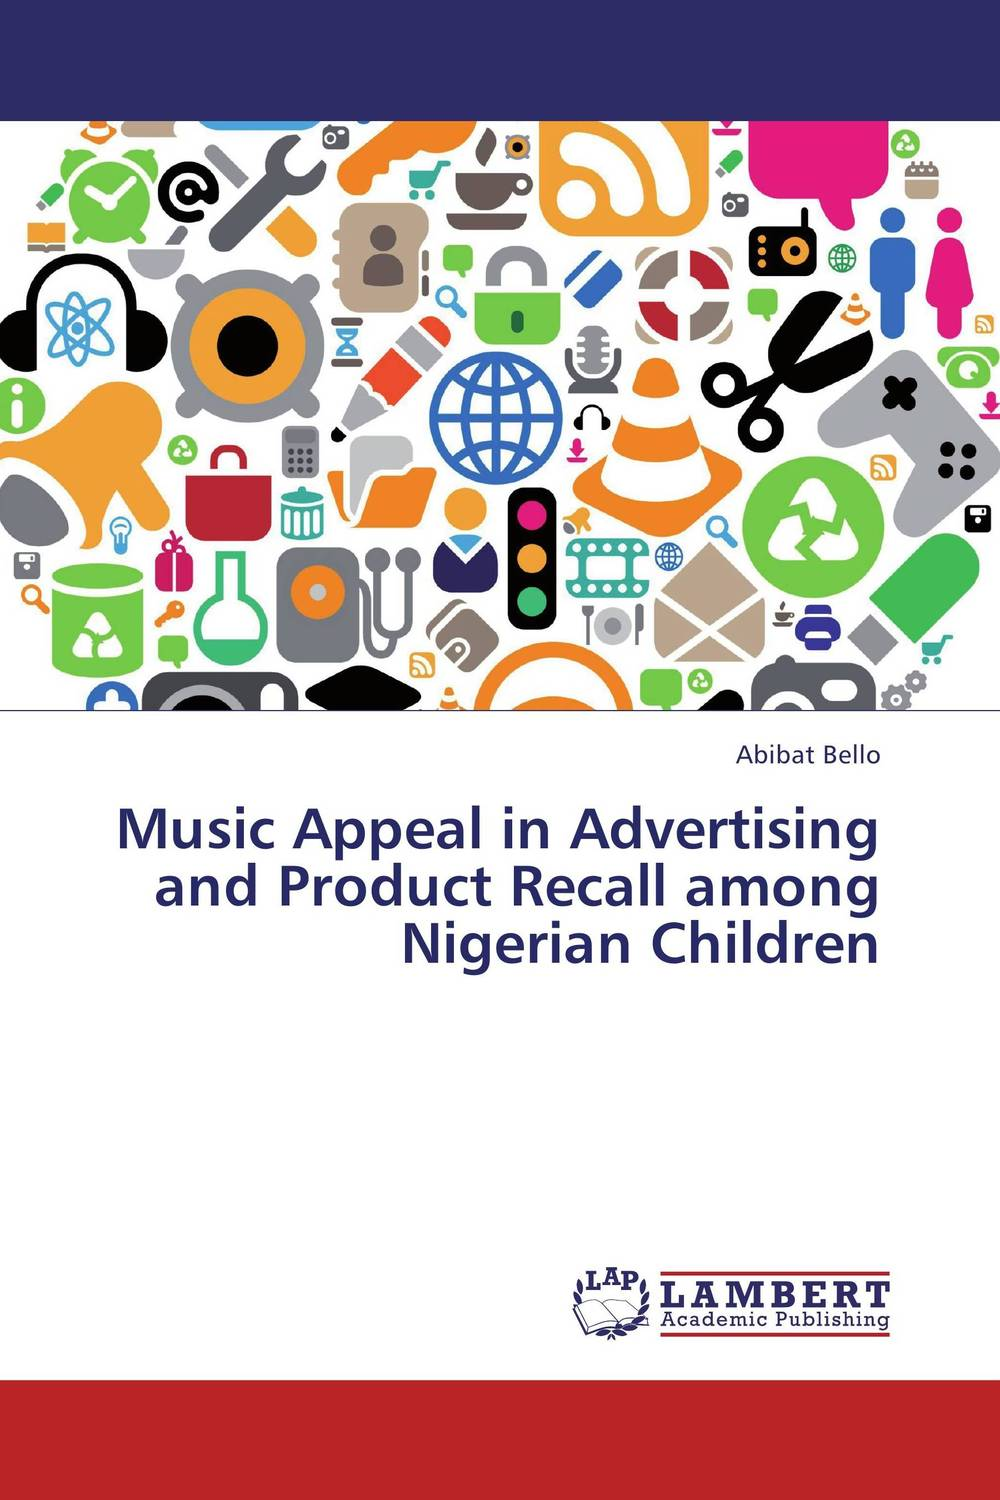 Music Appeal in Advertising and Product Recall among Nigerian Children seeing things as they are